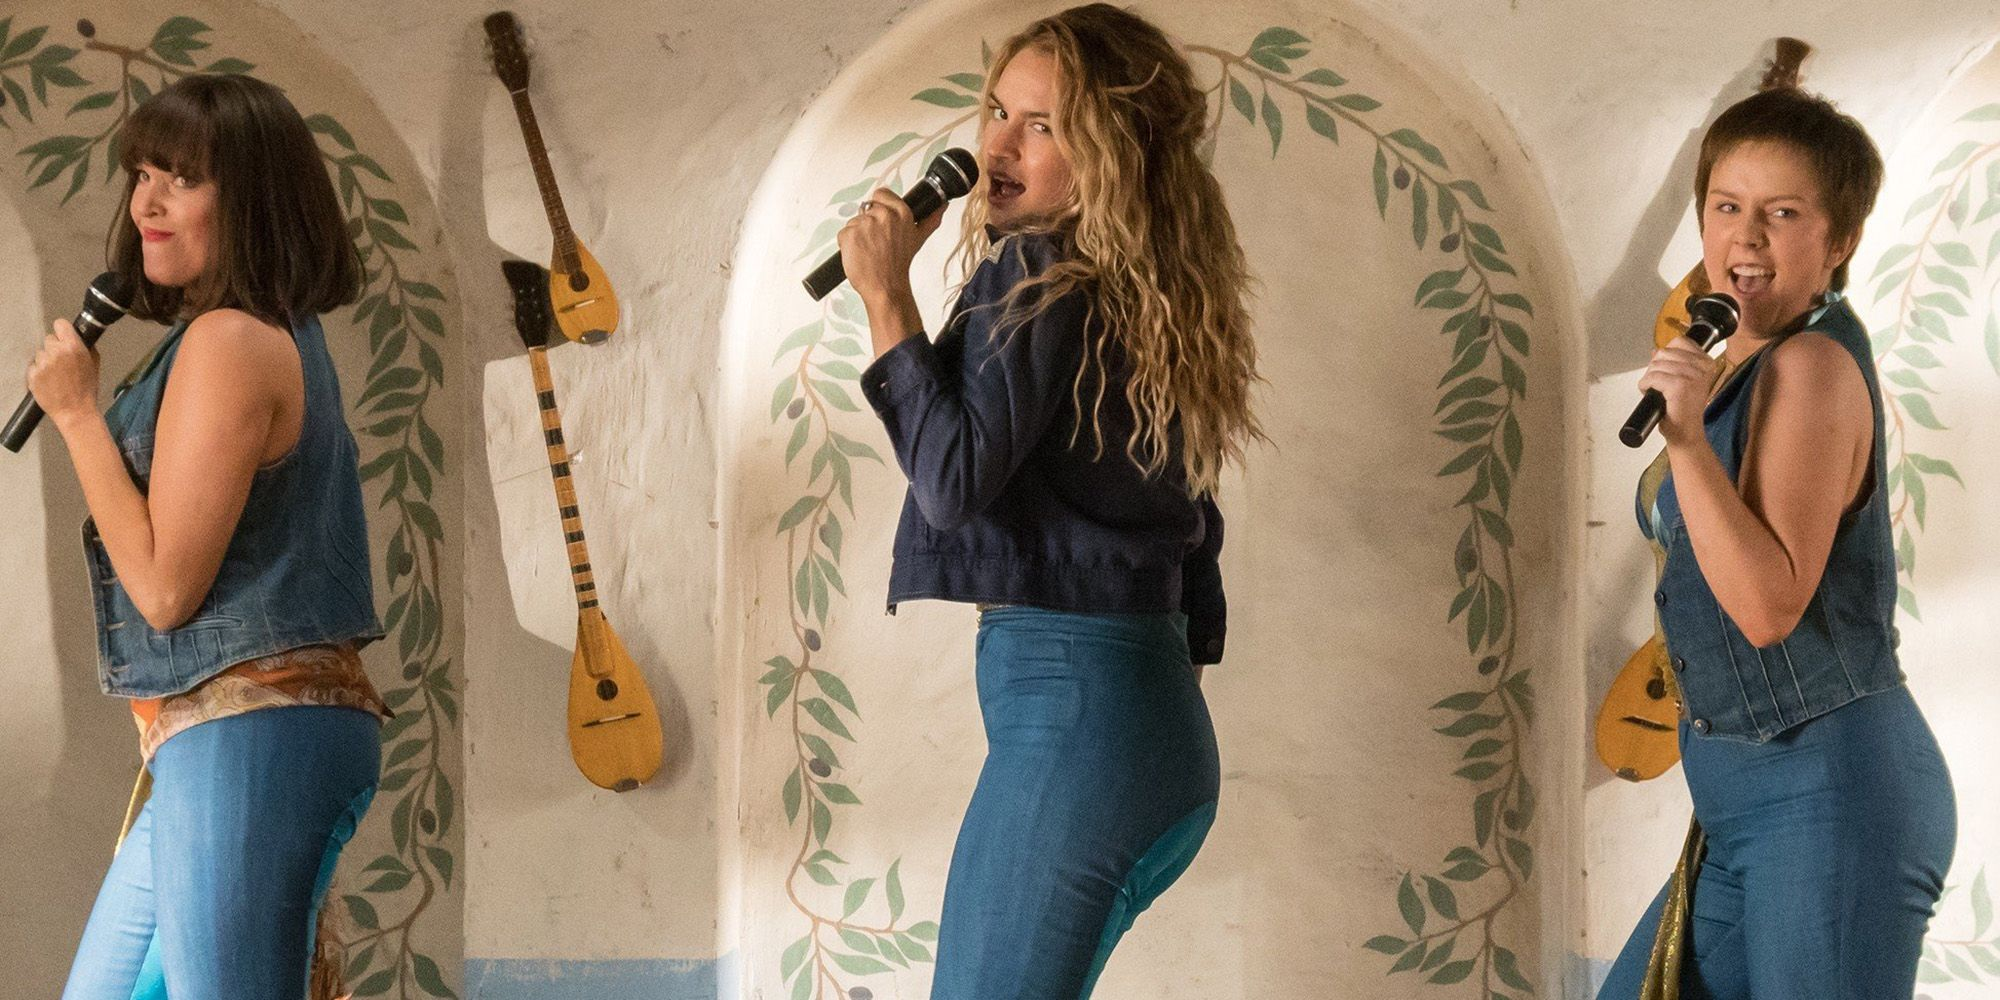 Mamma Mia 2 Clip Shows Lily James Singing As Young Meryl